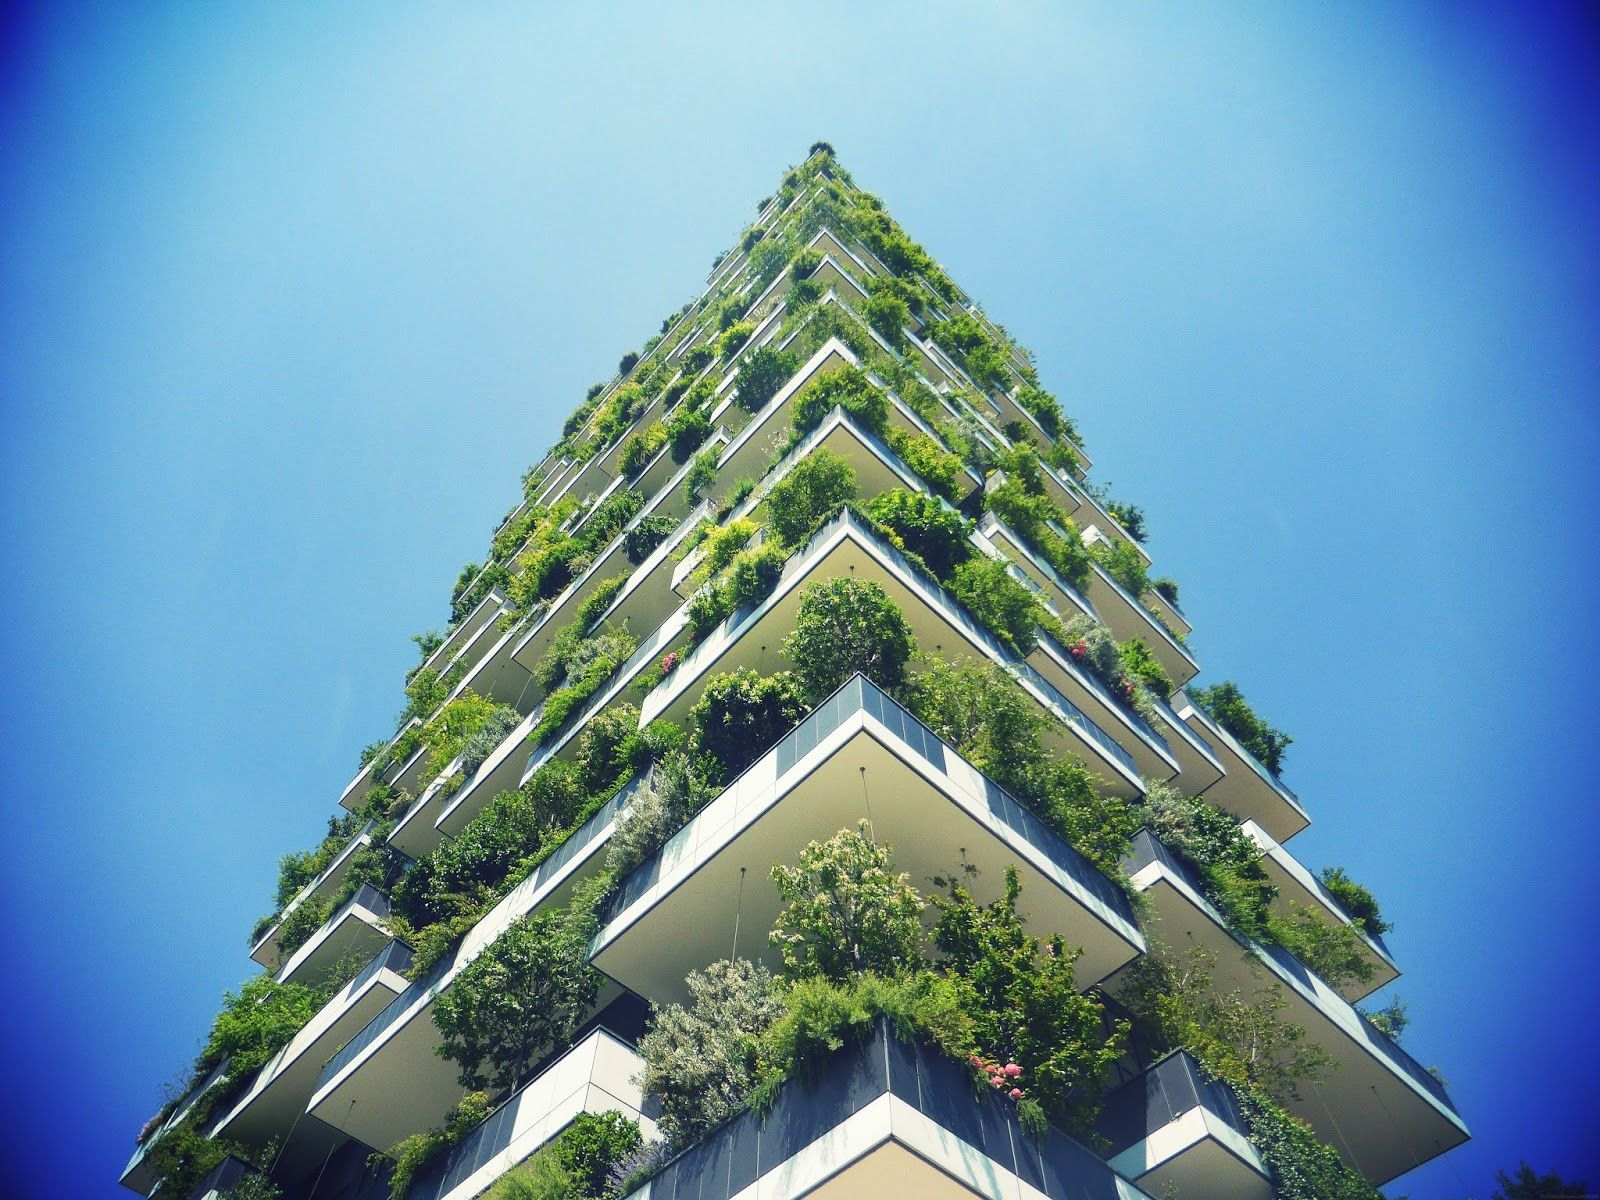 How New Sustainable Technologies Could Create A Green Future Green Architecture Vertical Forest Sustainable Technology